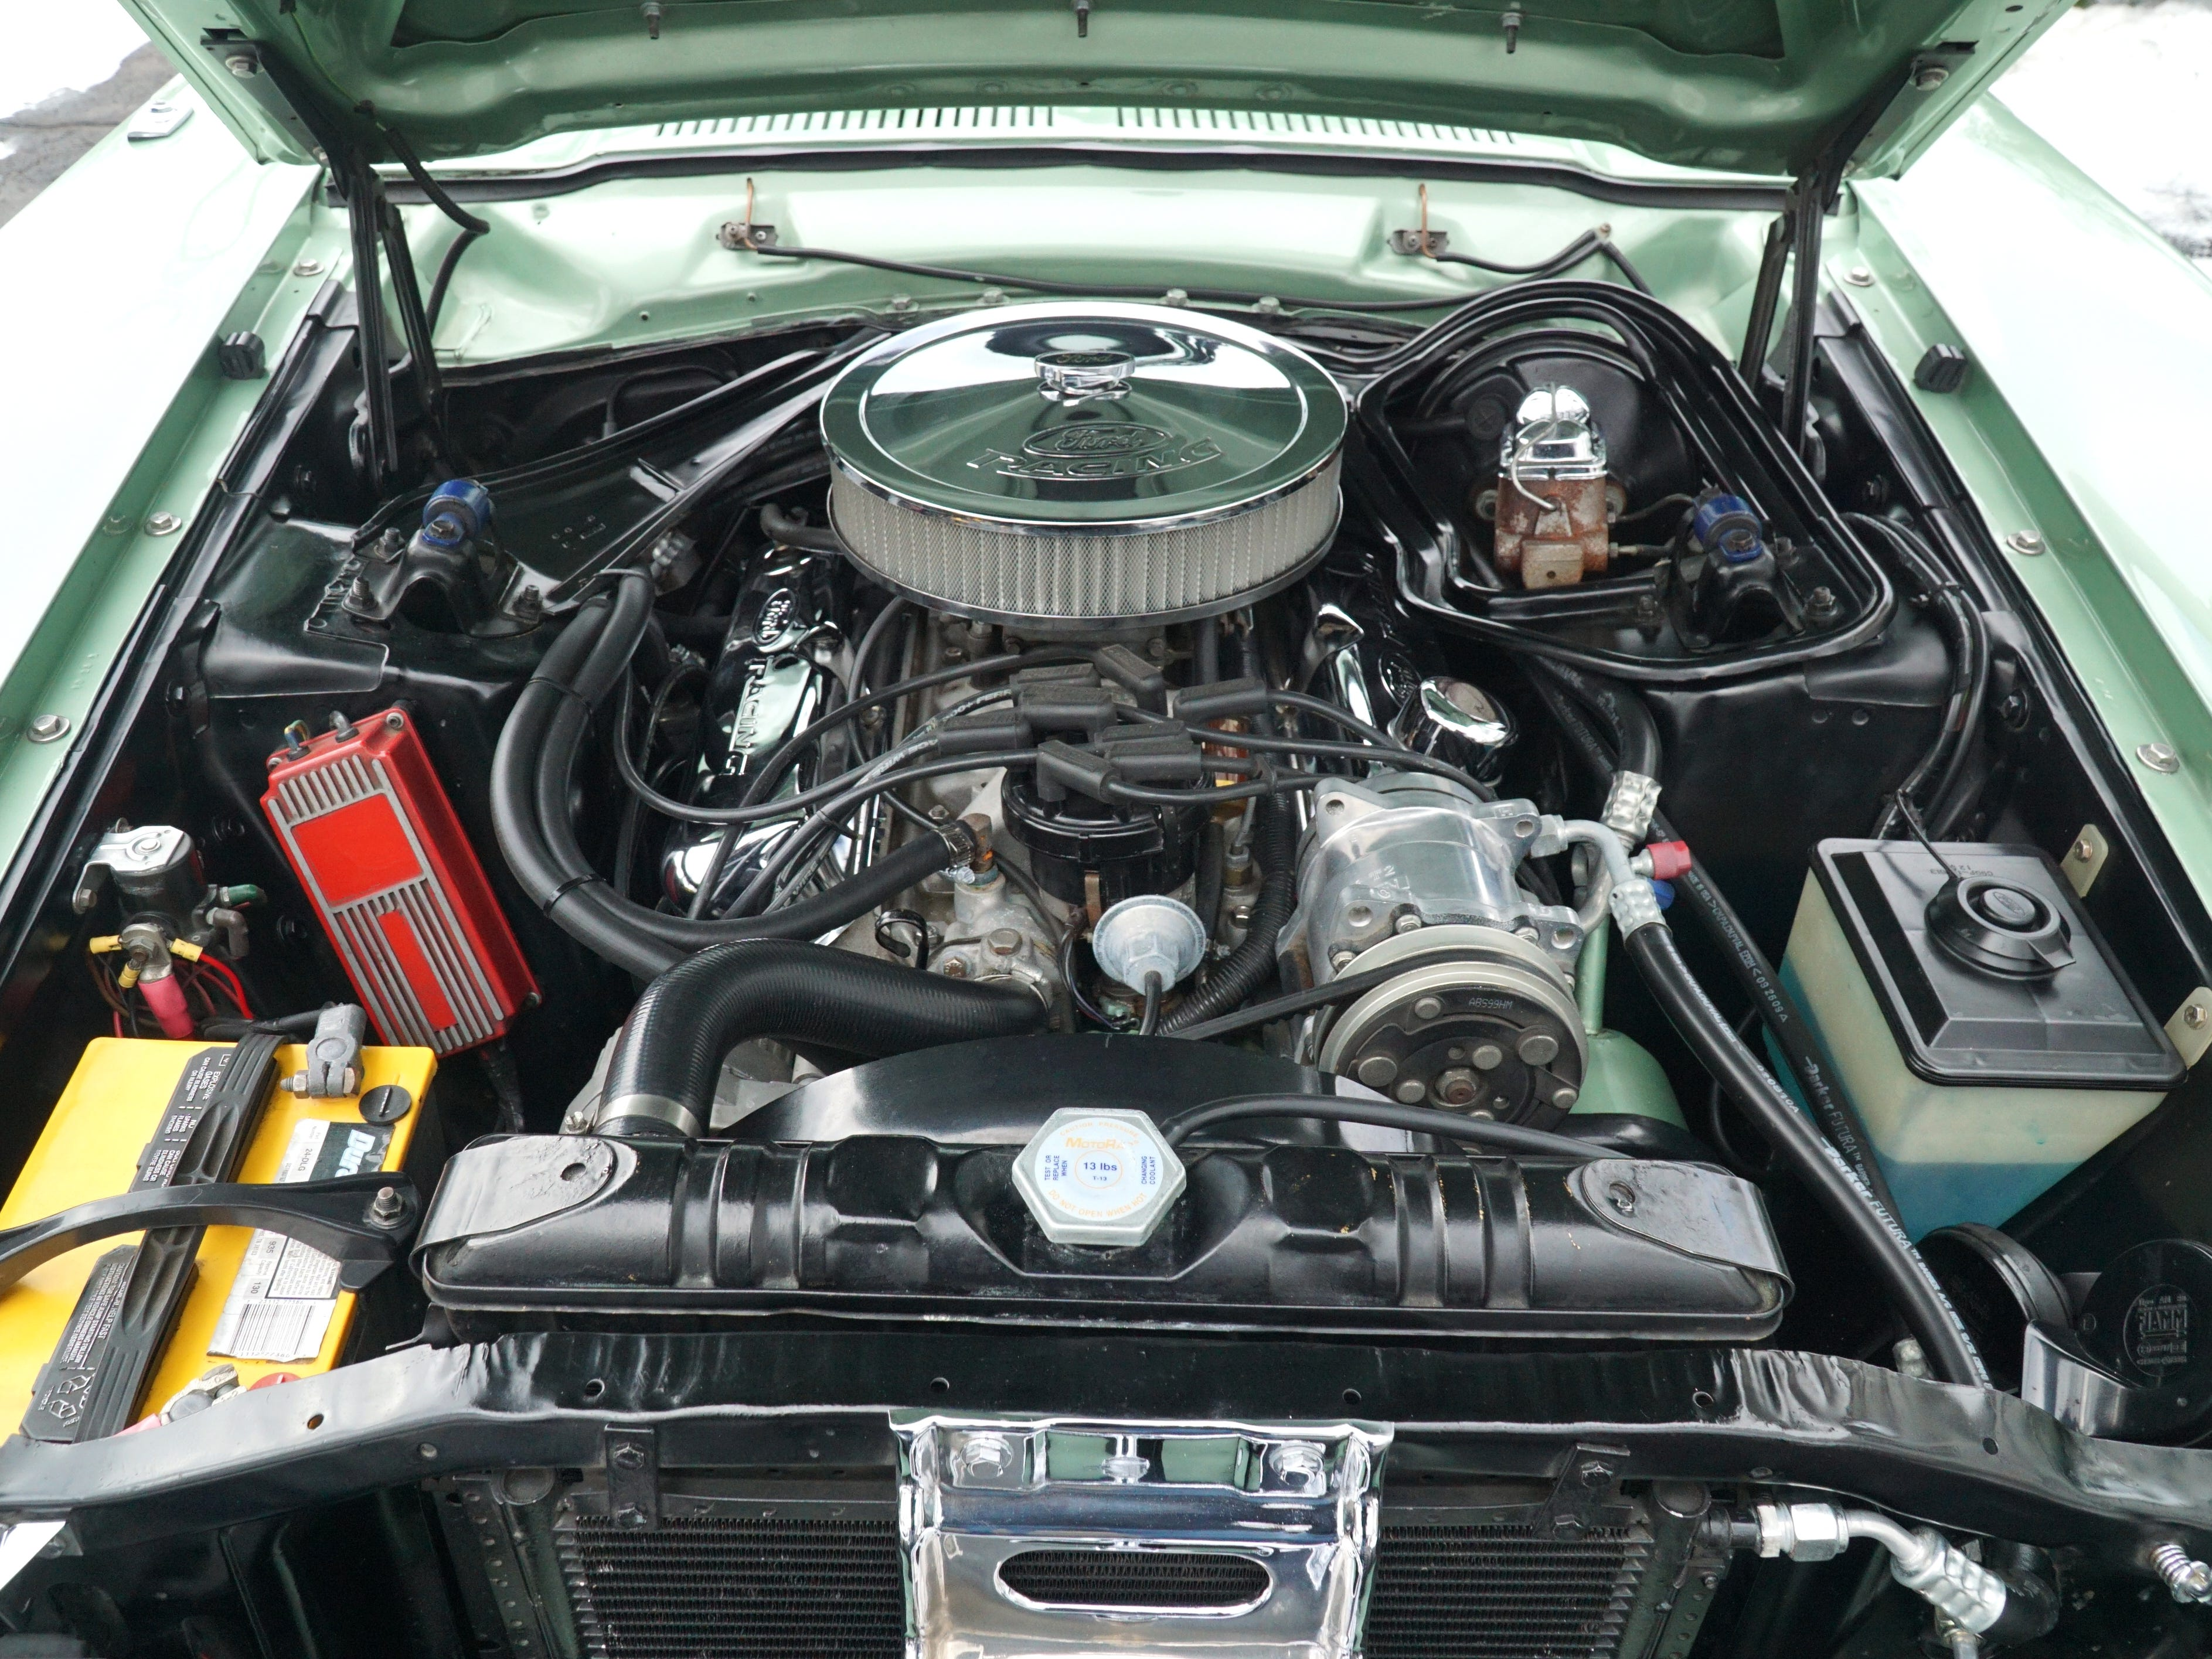 An under-the-hood look at the '71 Comet.